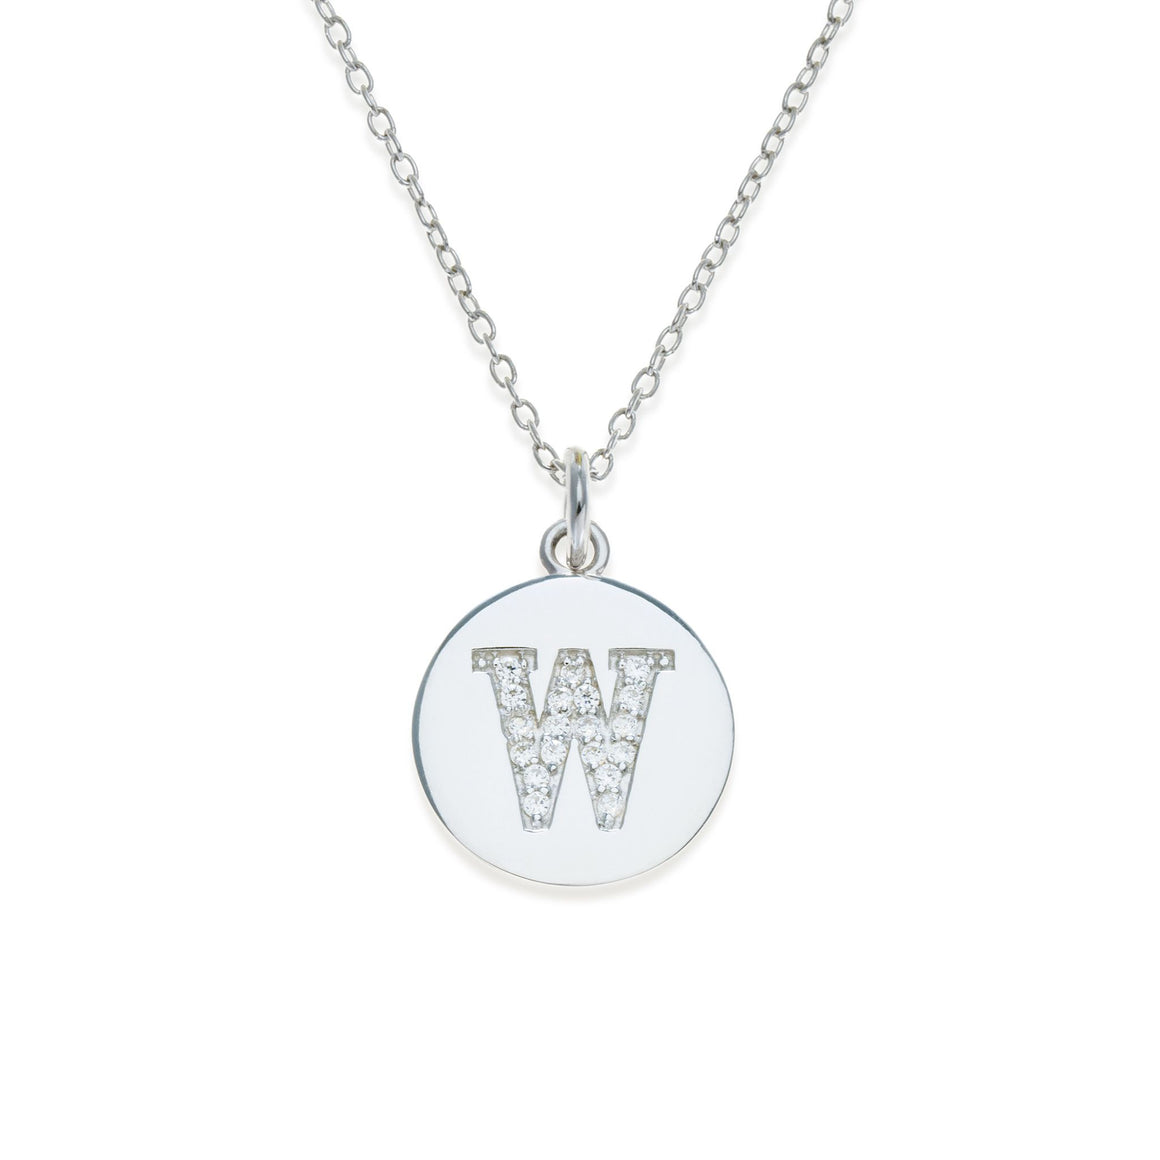 Sterling Silver Initial Necklace - W | Kith & Kin | It's Personal Collection